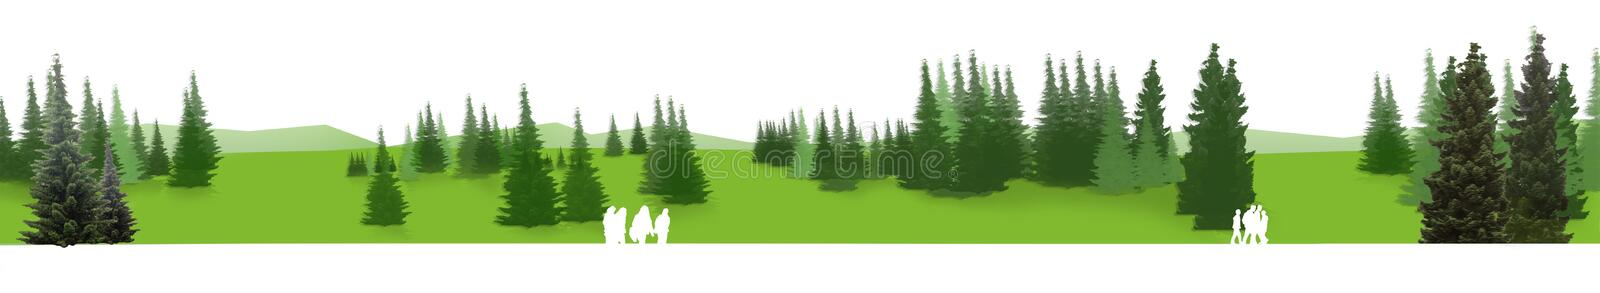 Green Panorama royalty free stock images